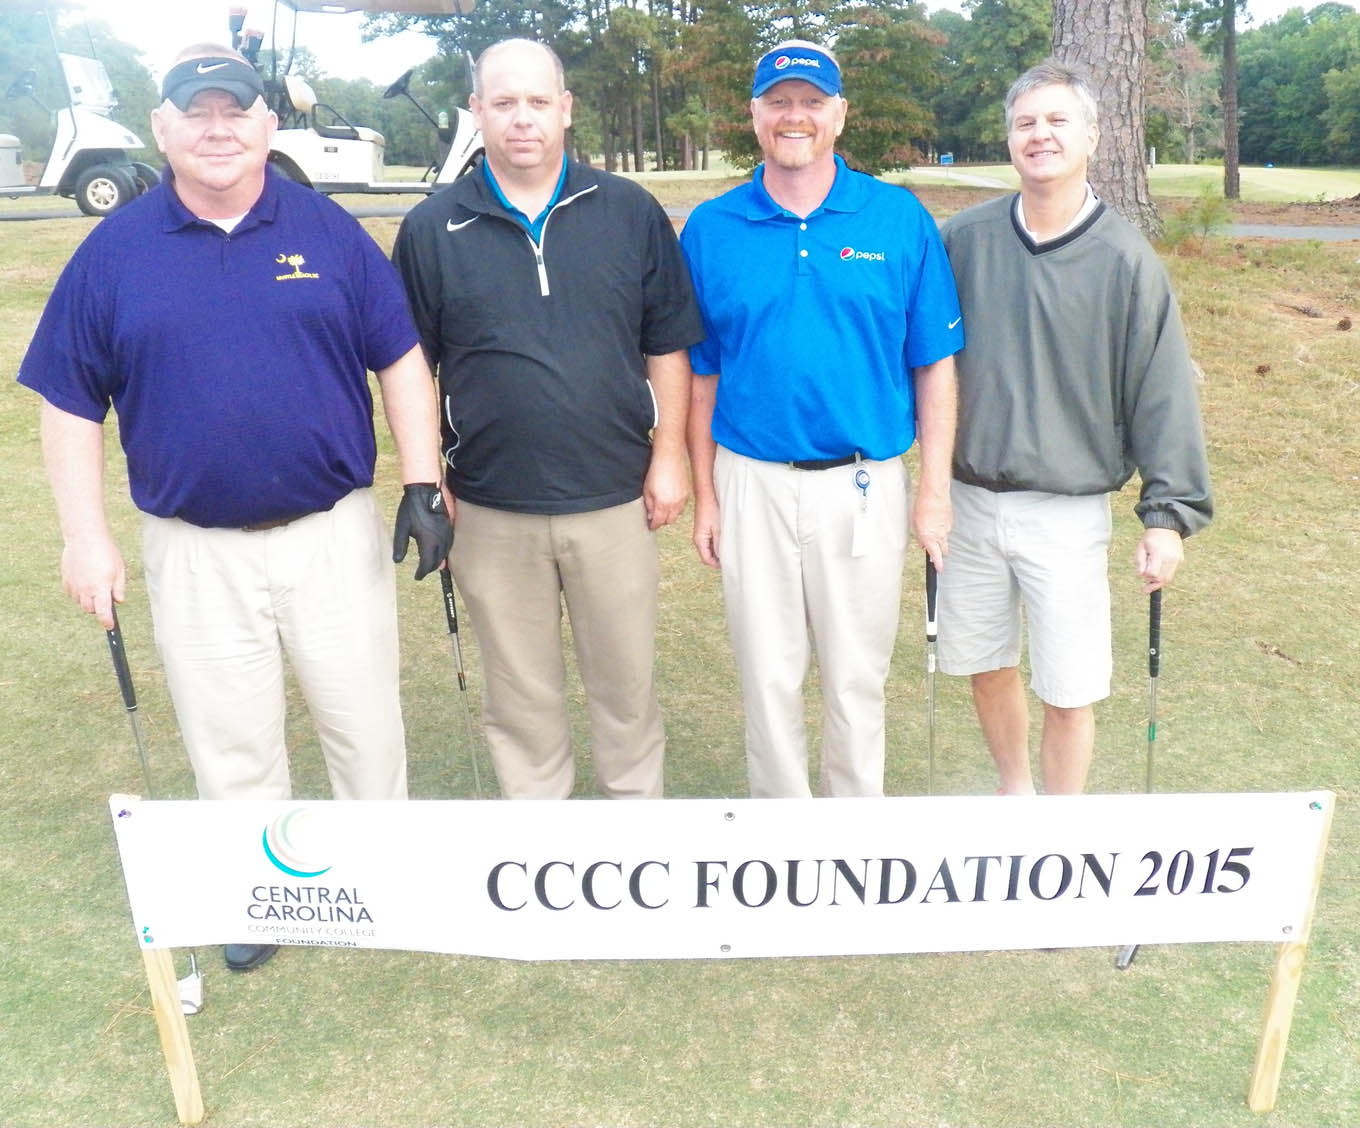 Click to enlarge,  The team of Dale Gregory, Vince Wenger, Johnnie Badgett, and Mike Hart won the third flight of the morning tournament of the CCCC Foundation Lee Golf Classic.